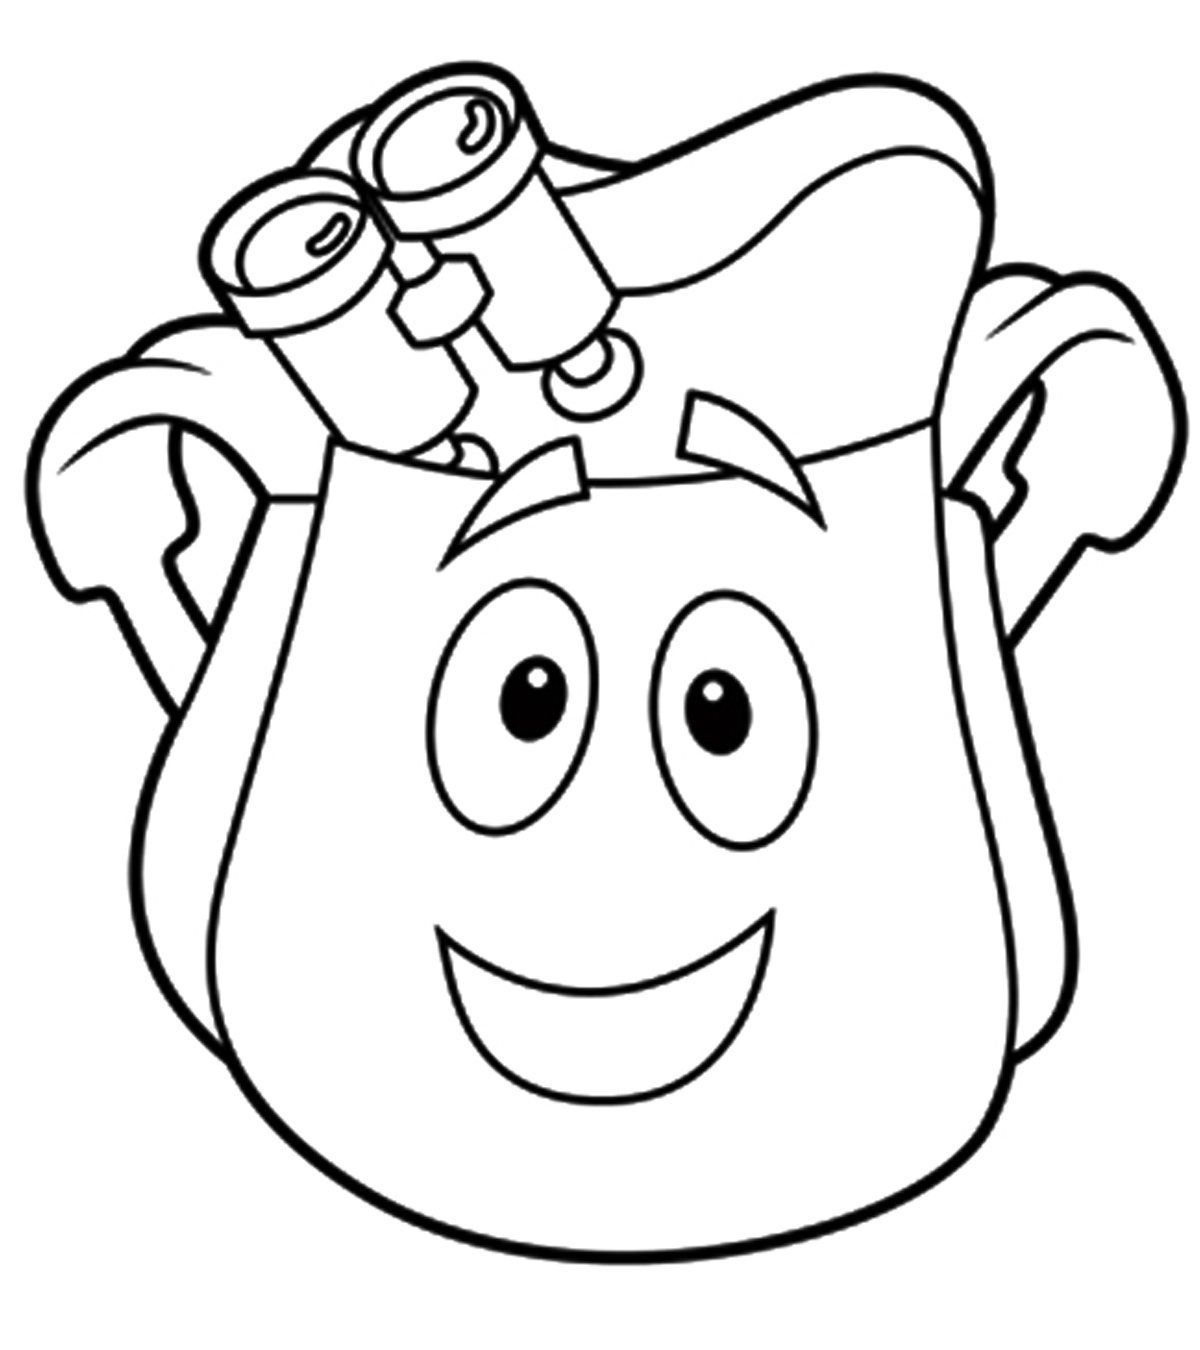 Coloring pages smurfs - free downloads | 1350x1200